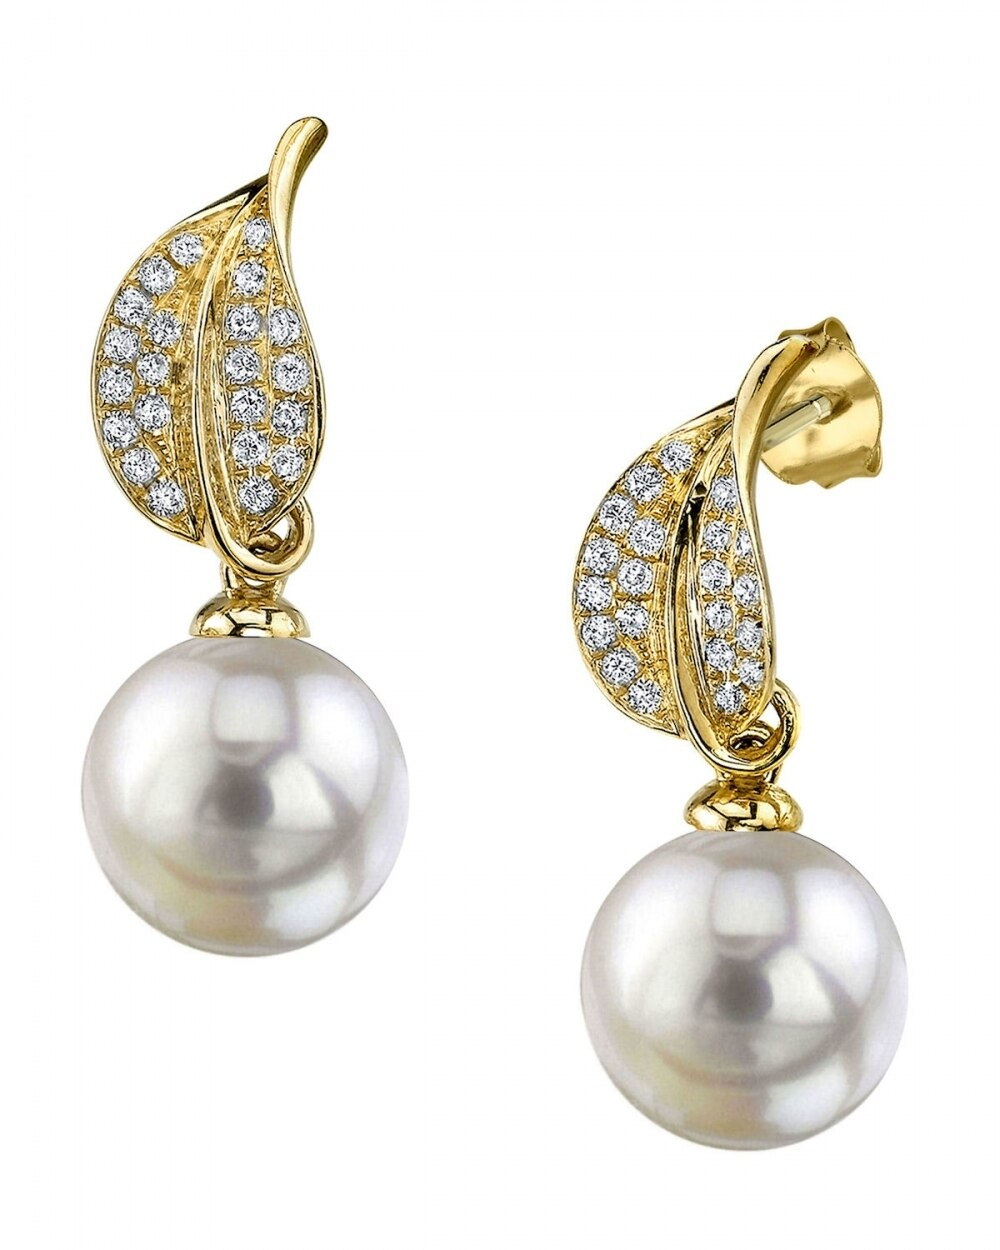 Exquisite earrings feature two 9.0-10.0mm  White South Sea pearls, selected for their luminous luster